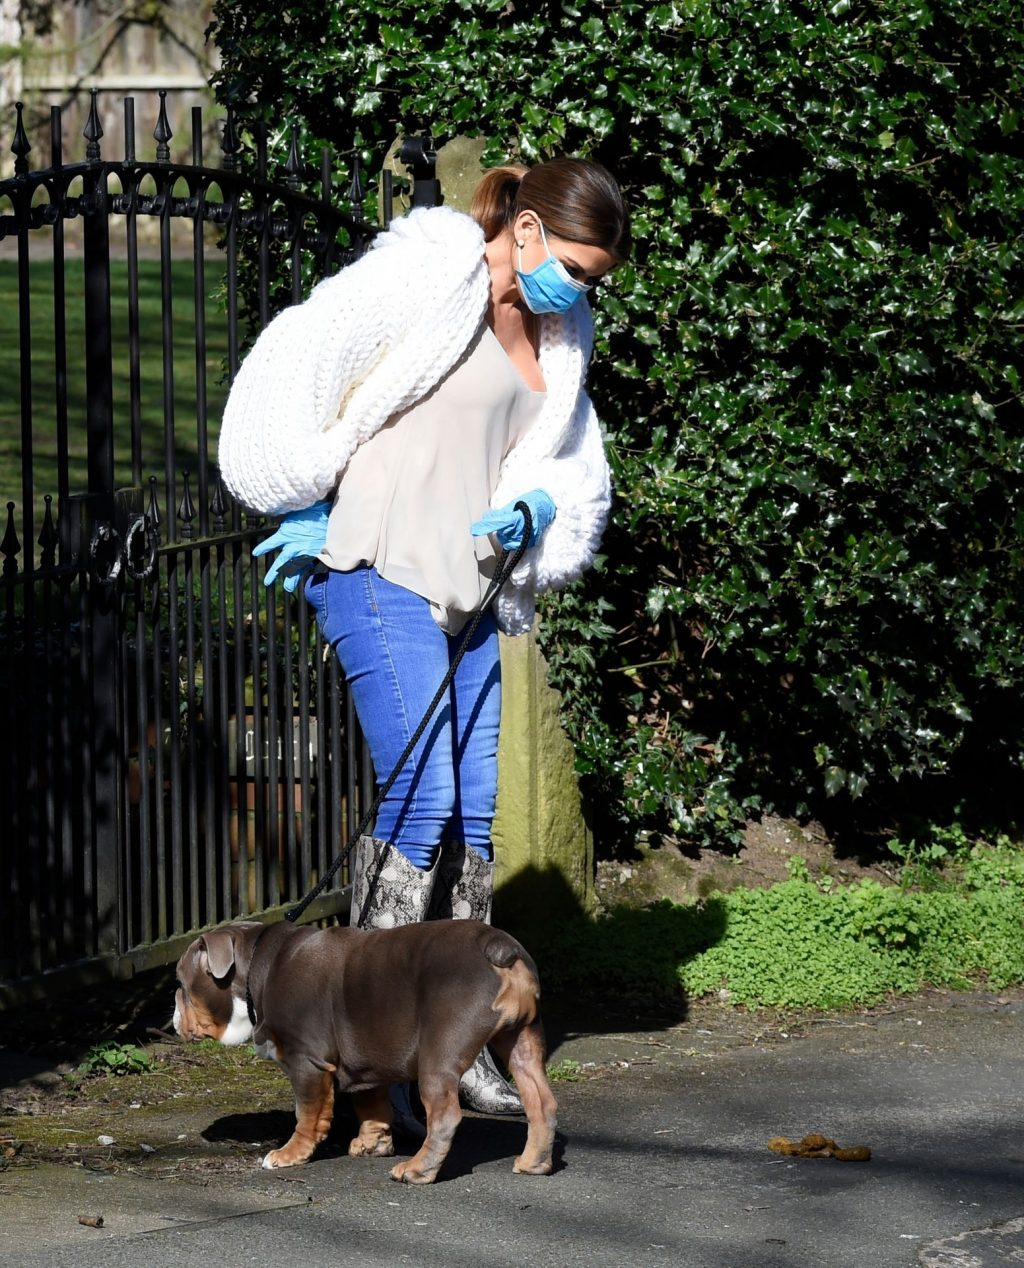 Tanya Bardsley Is walking with her Dog in Mask and Gloves in Cheshire (11 Photos)